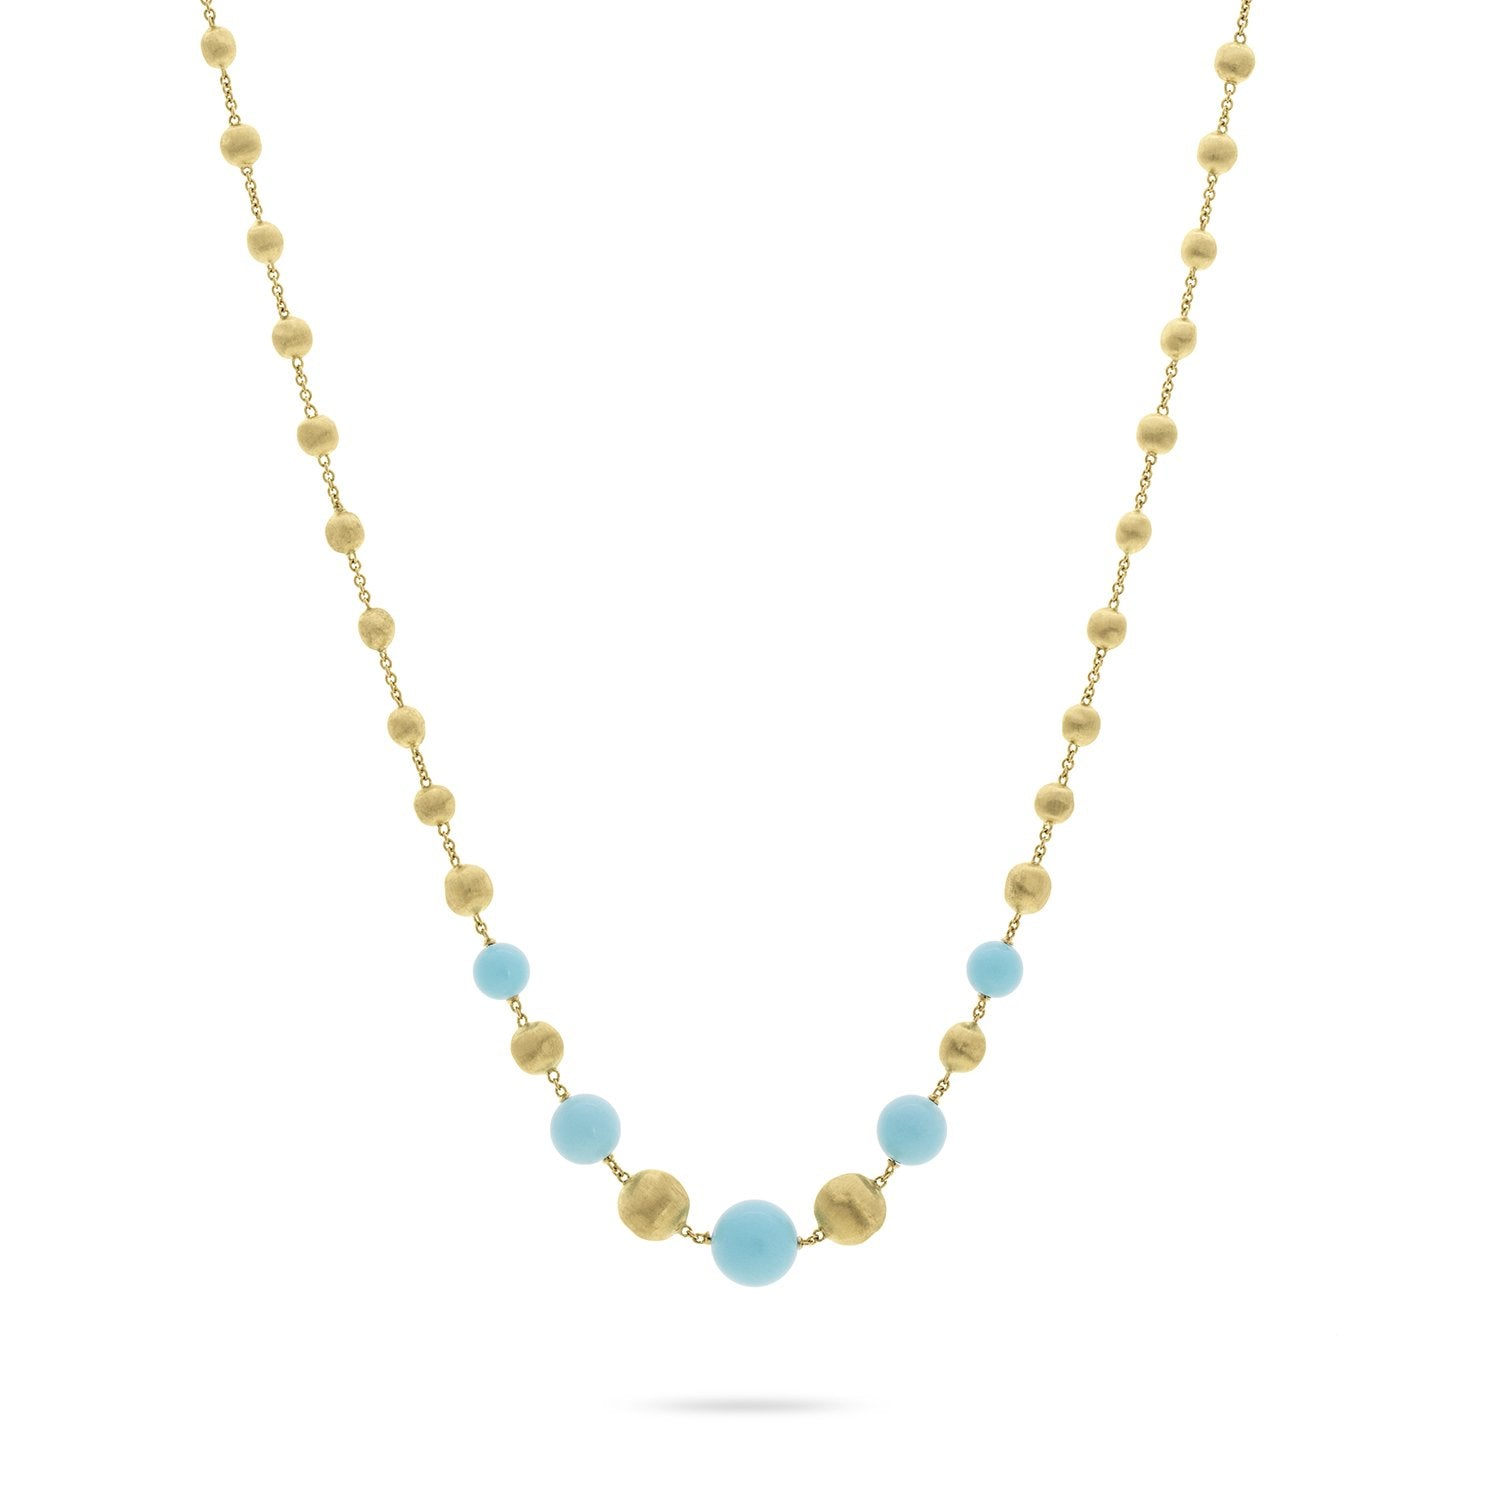 Africa 18K Yellow Gold and Turquoise Short Necklace